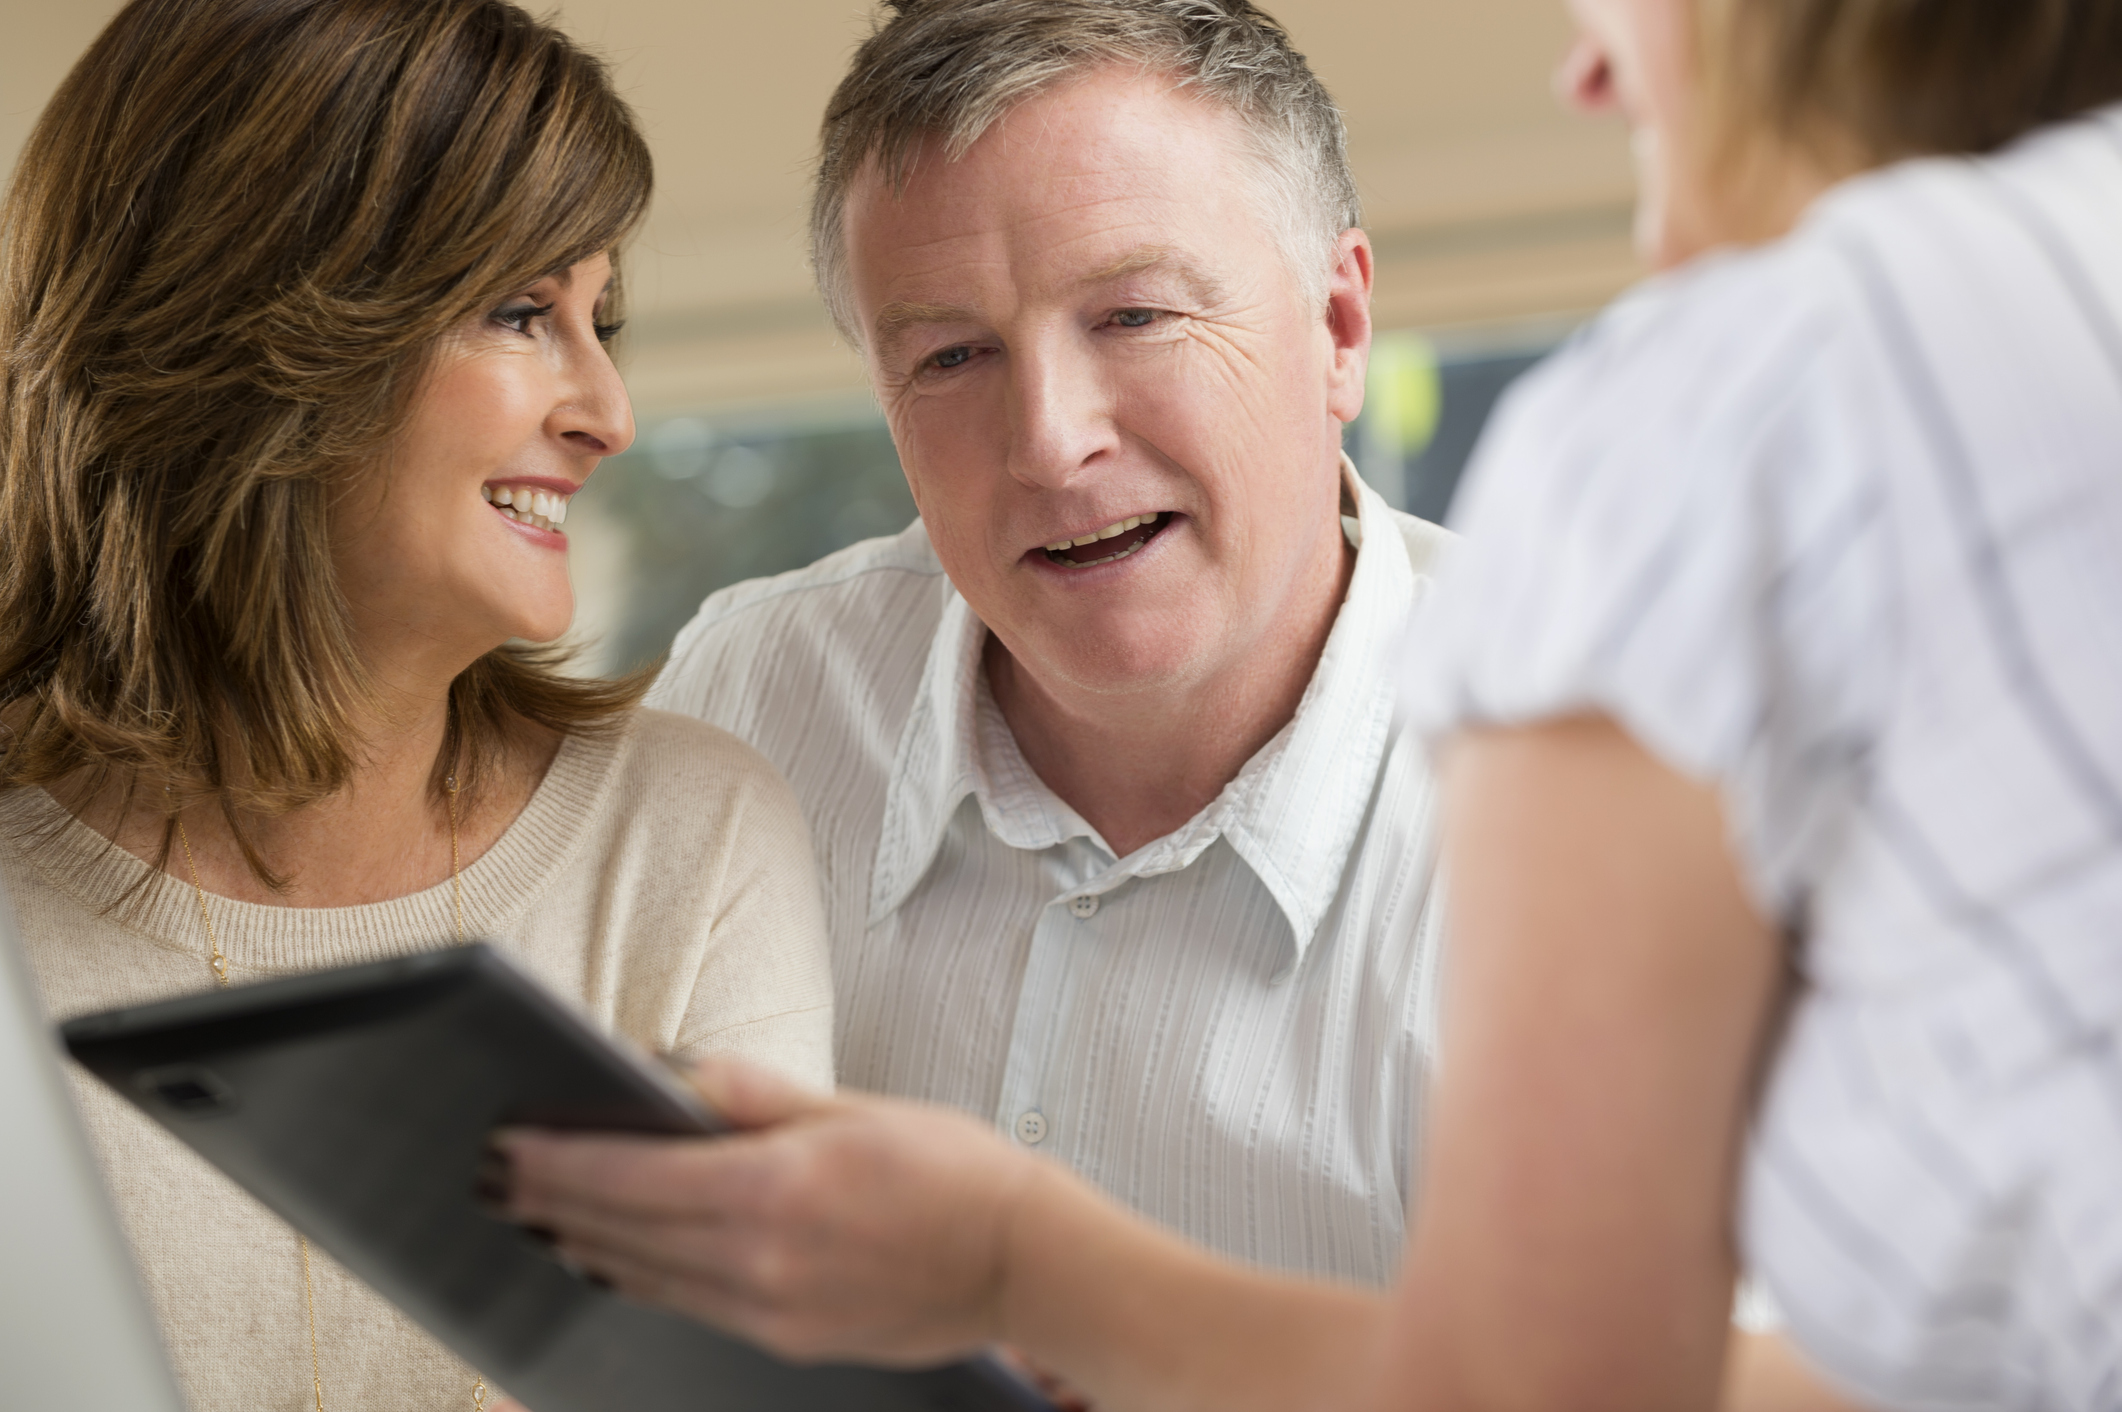 Advisor reviewing information on an ipad with happy couple